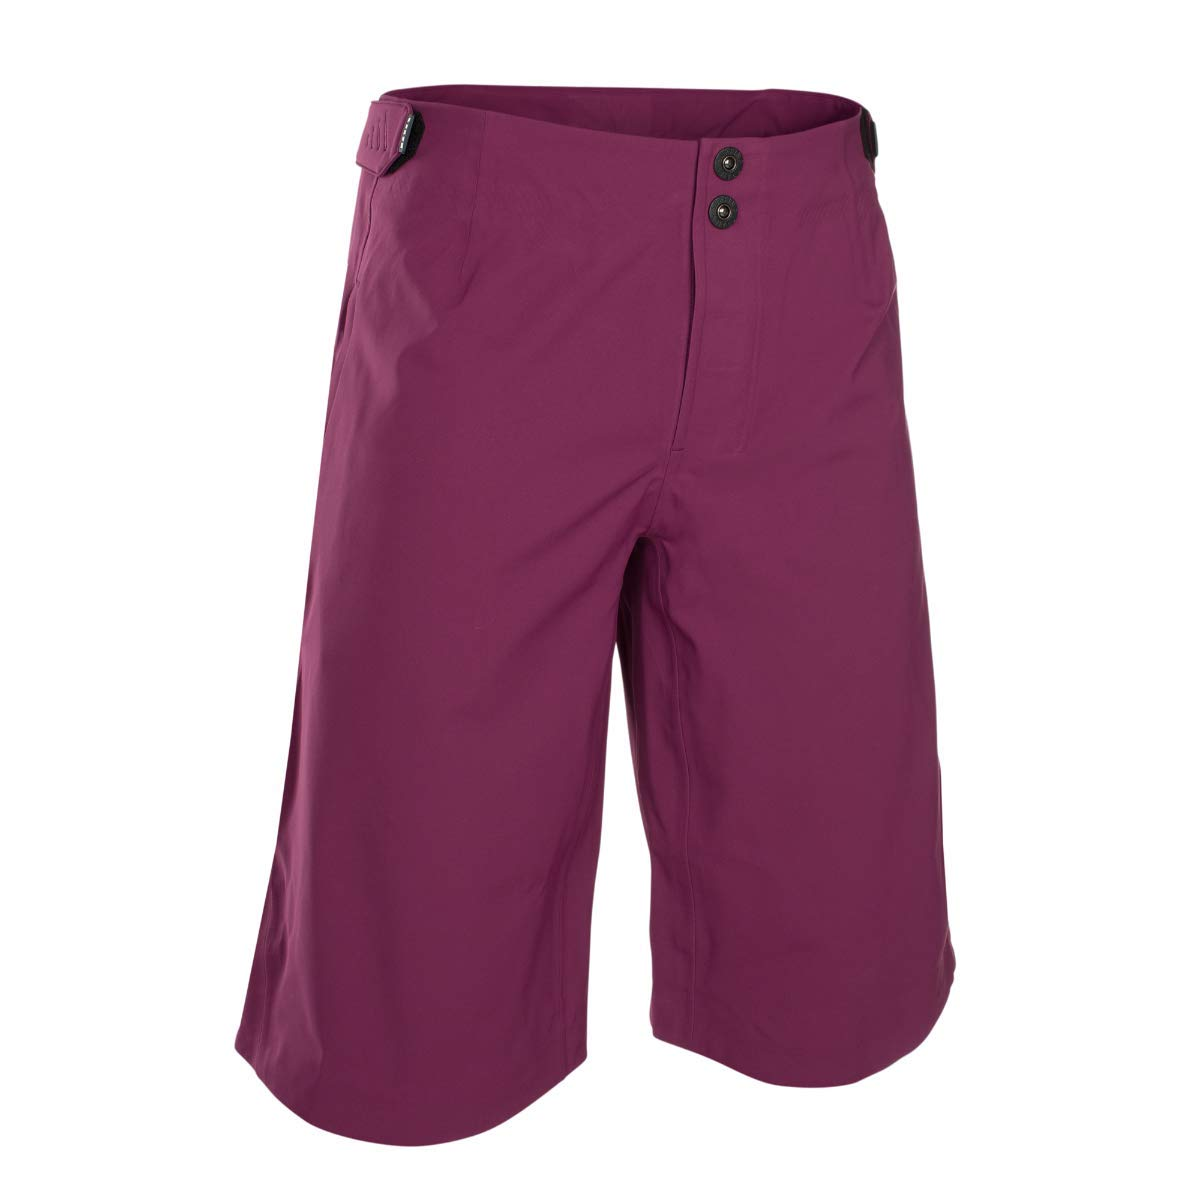 Ion 3 Layer Traze Amp Fahrrad Short Hose kurz Bordeaux rot 2019